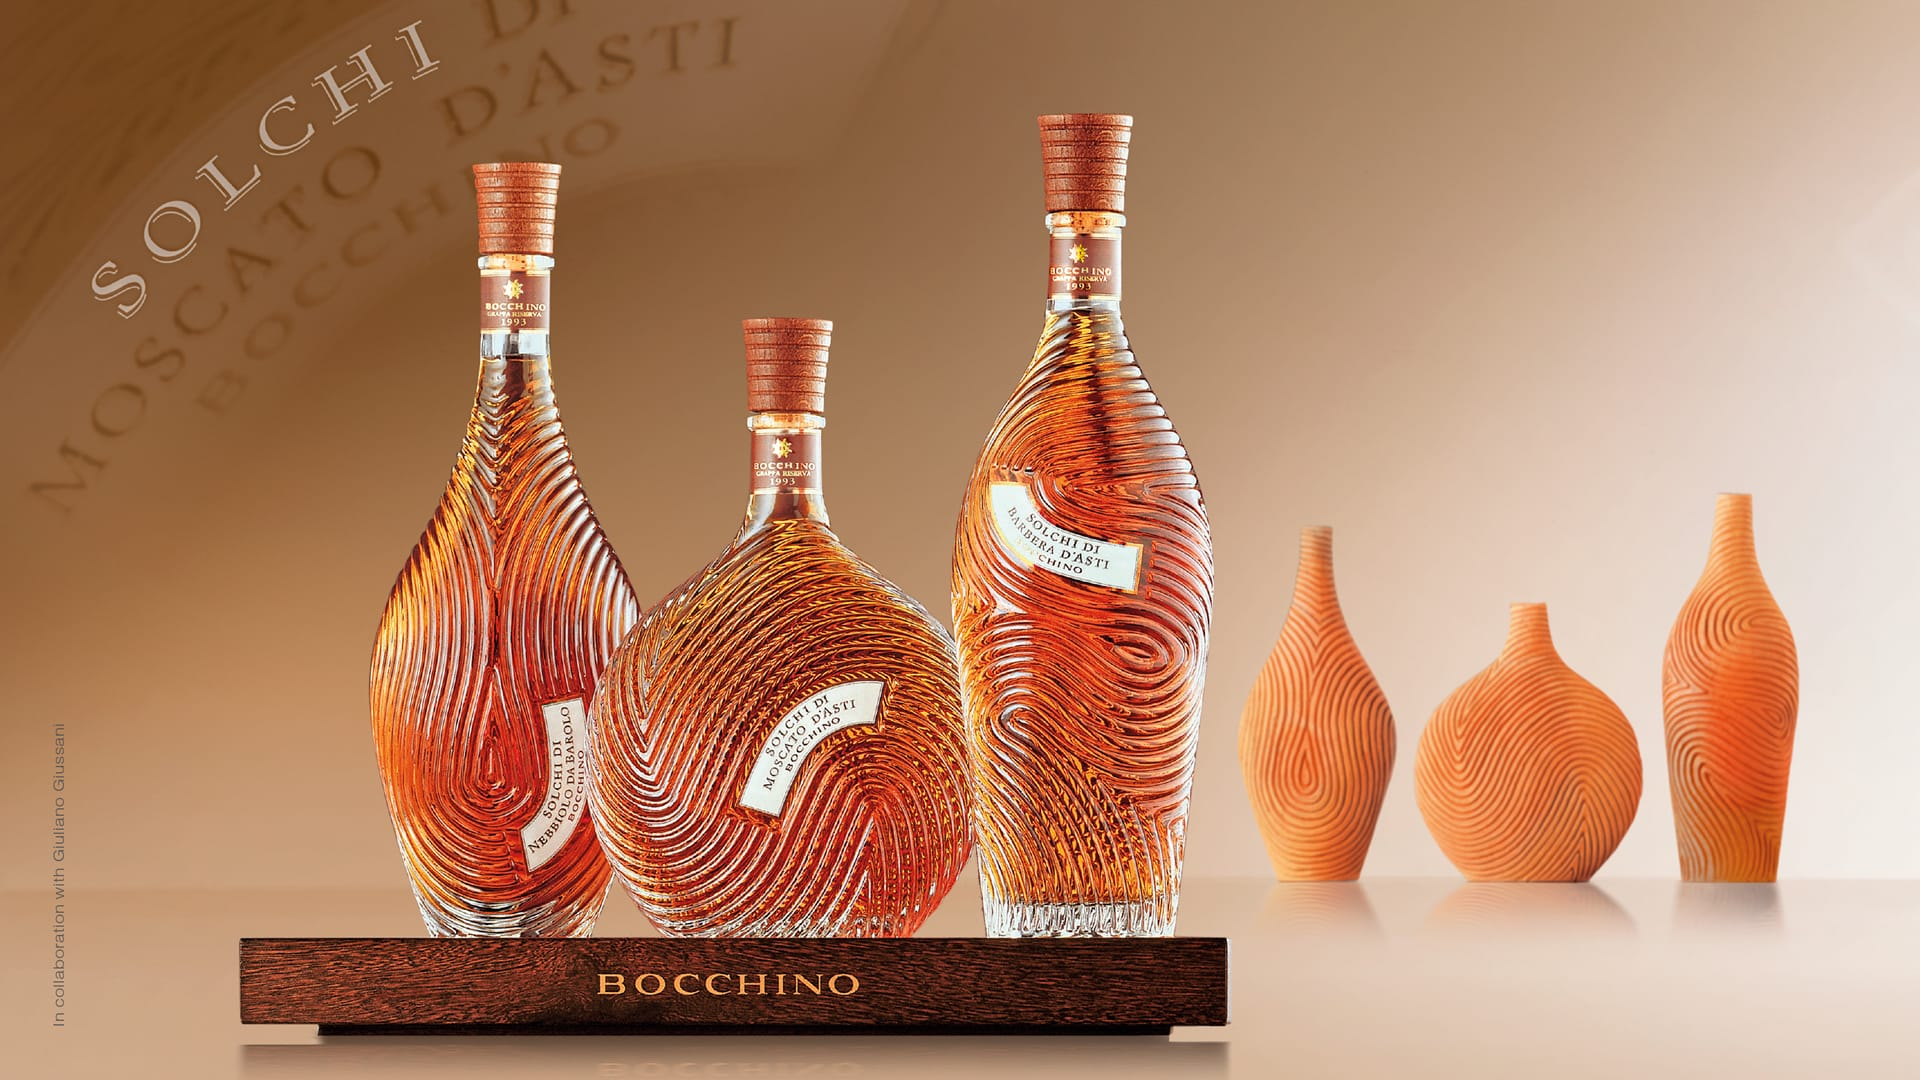 Bocchino Cantina Privata bottle design